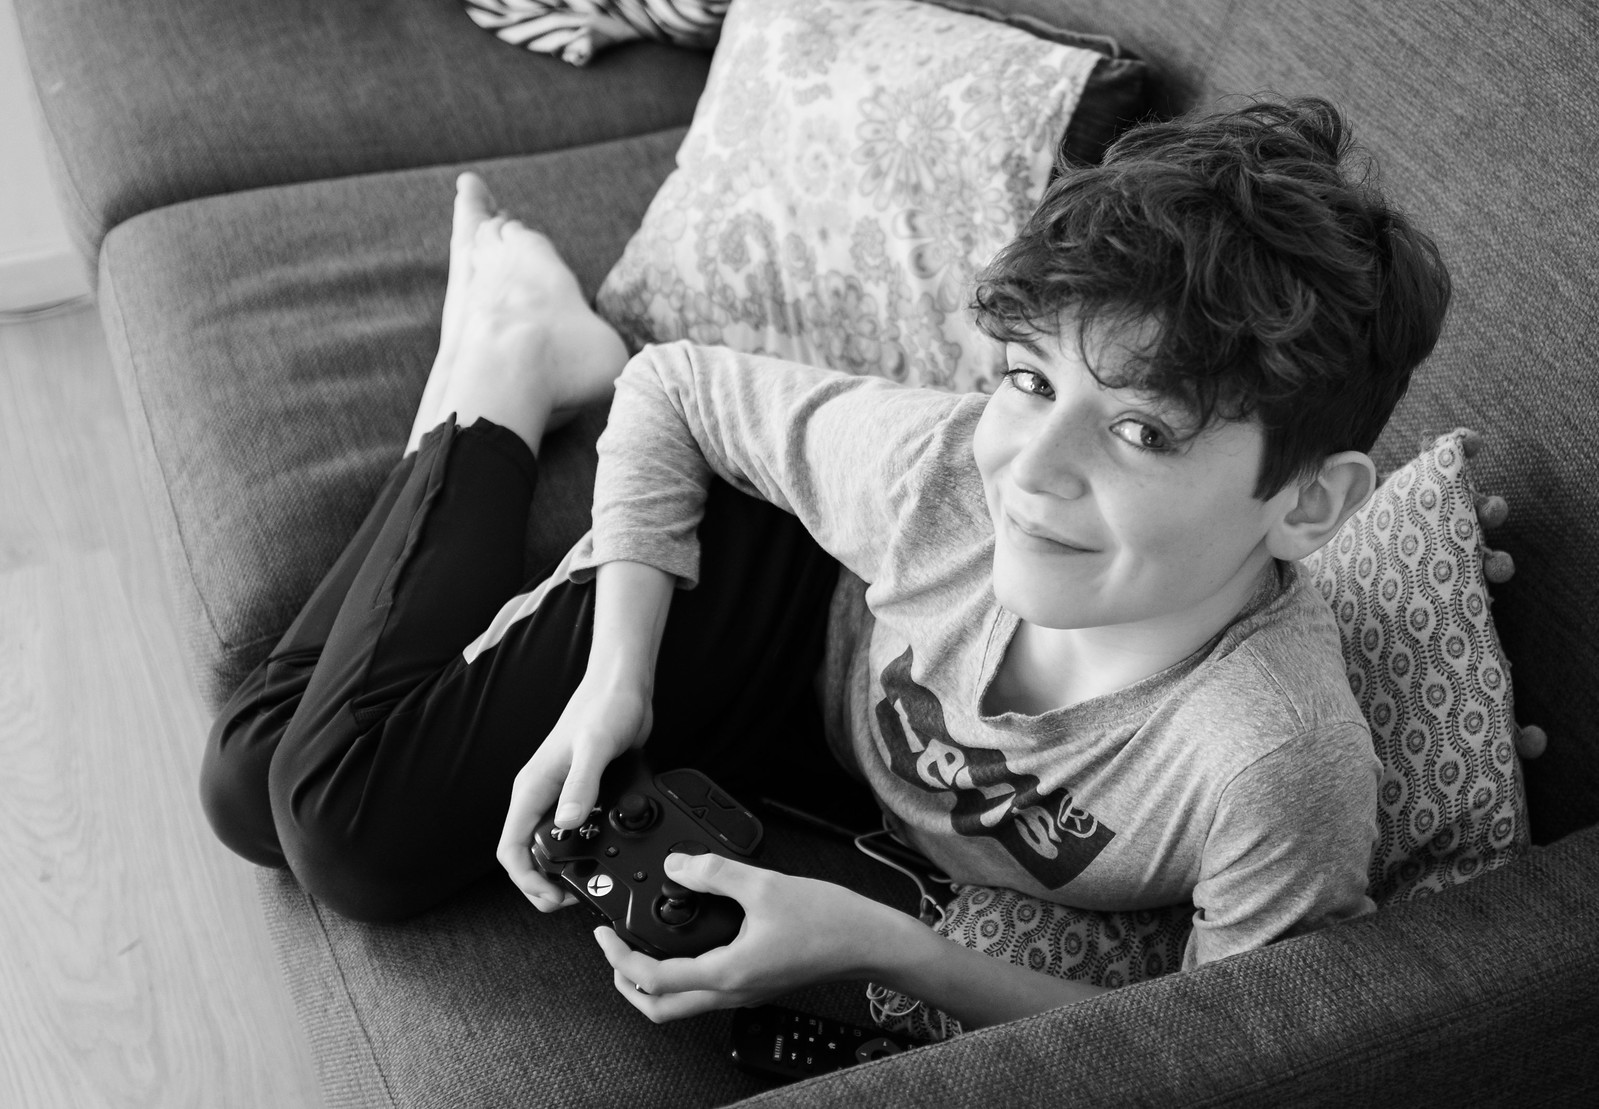 Fred, Xbox pause